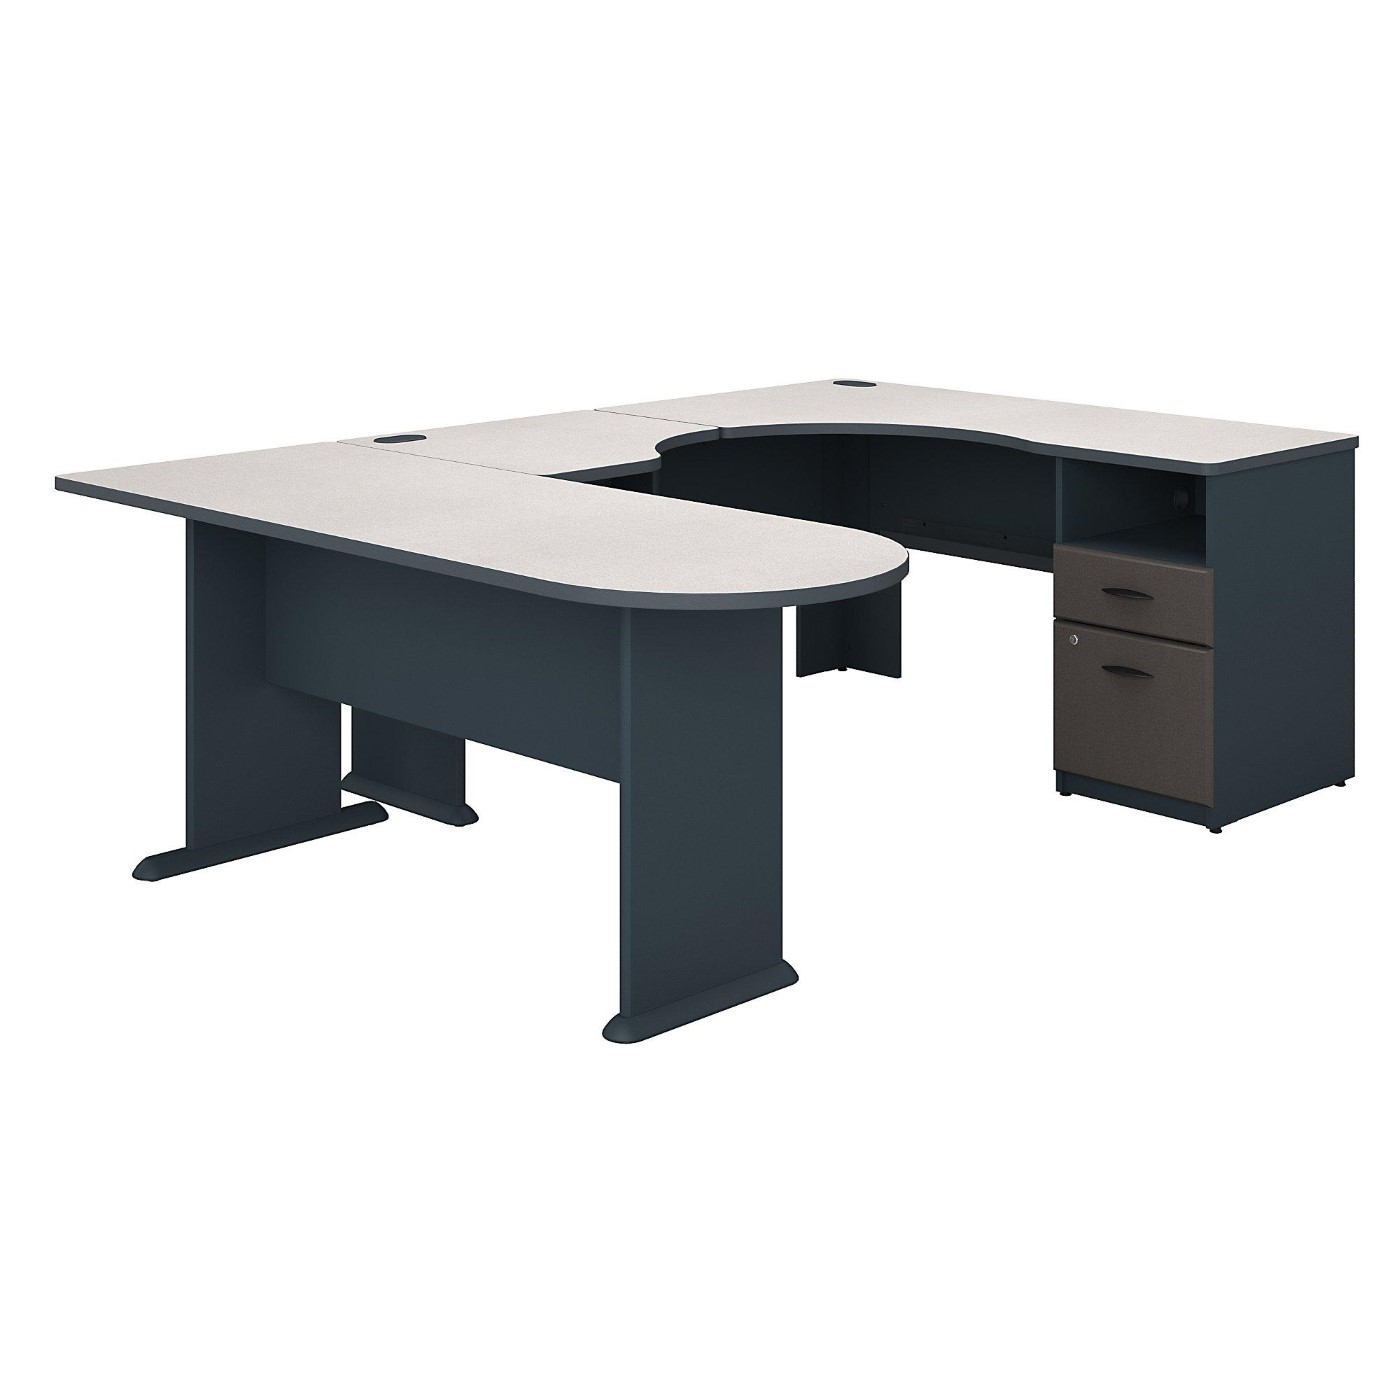 BUSH BUSINESS FURNITURE SERIES A U SHAPED CORNER DESK WITH PENINSULA AND STORAGE. FREE SHIPPING.